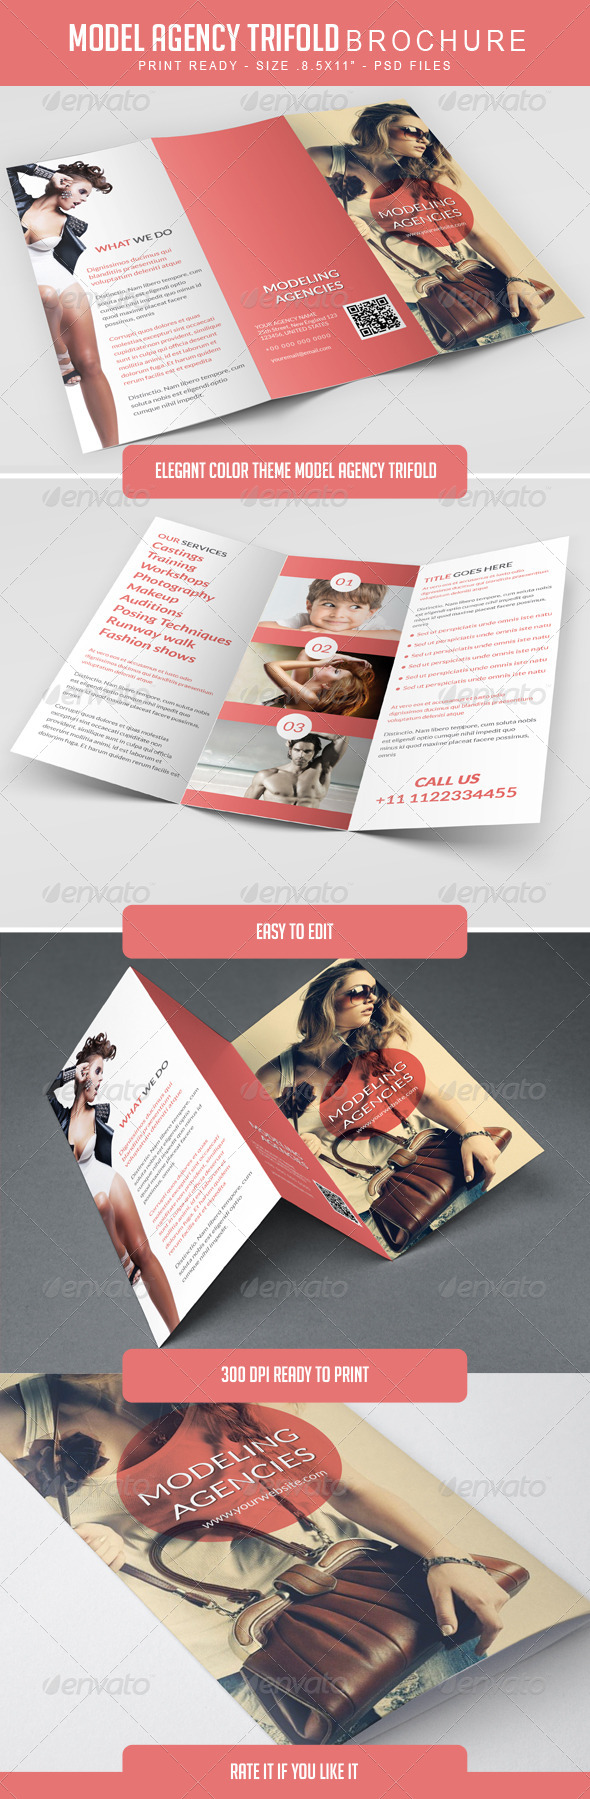 GraphicRiver Modeling Agency Trifold Brochure 8008661